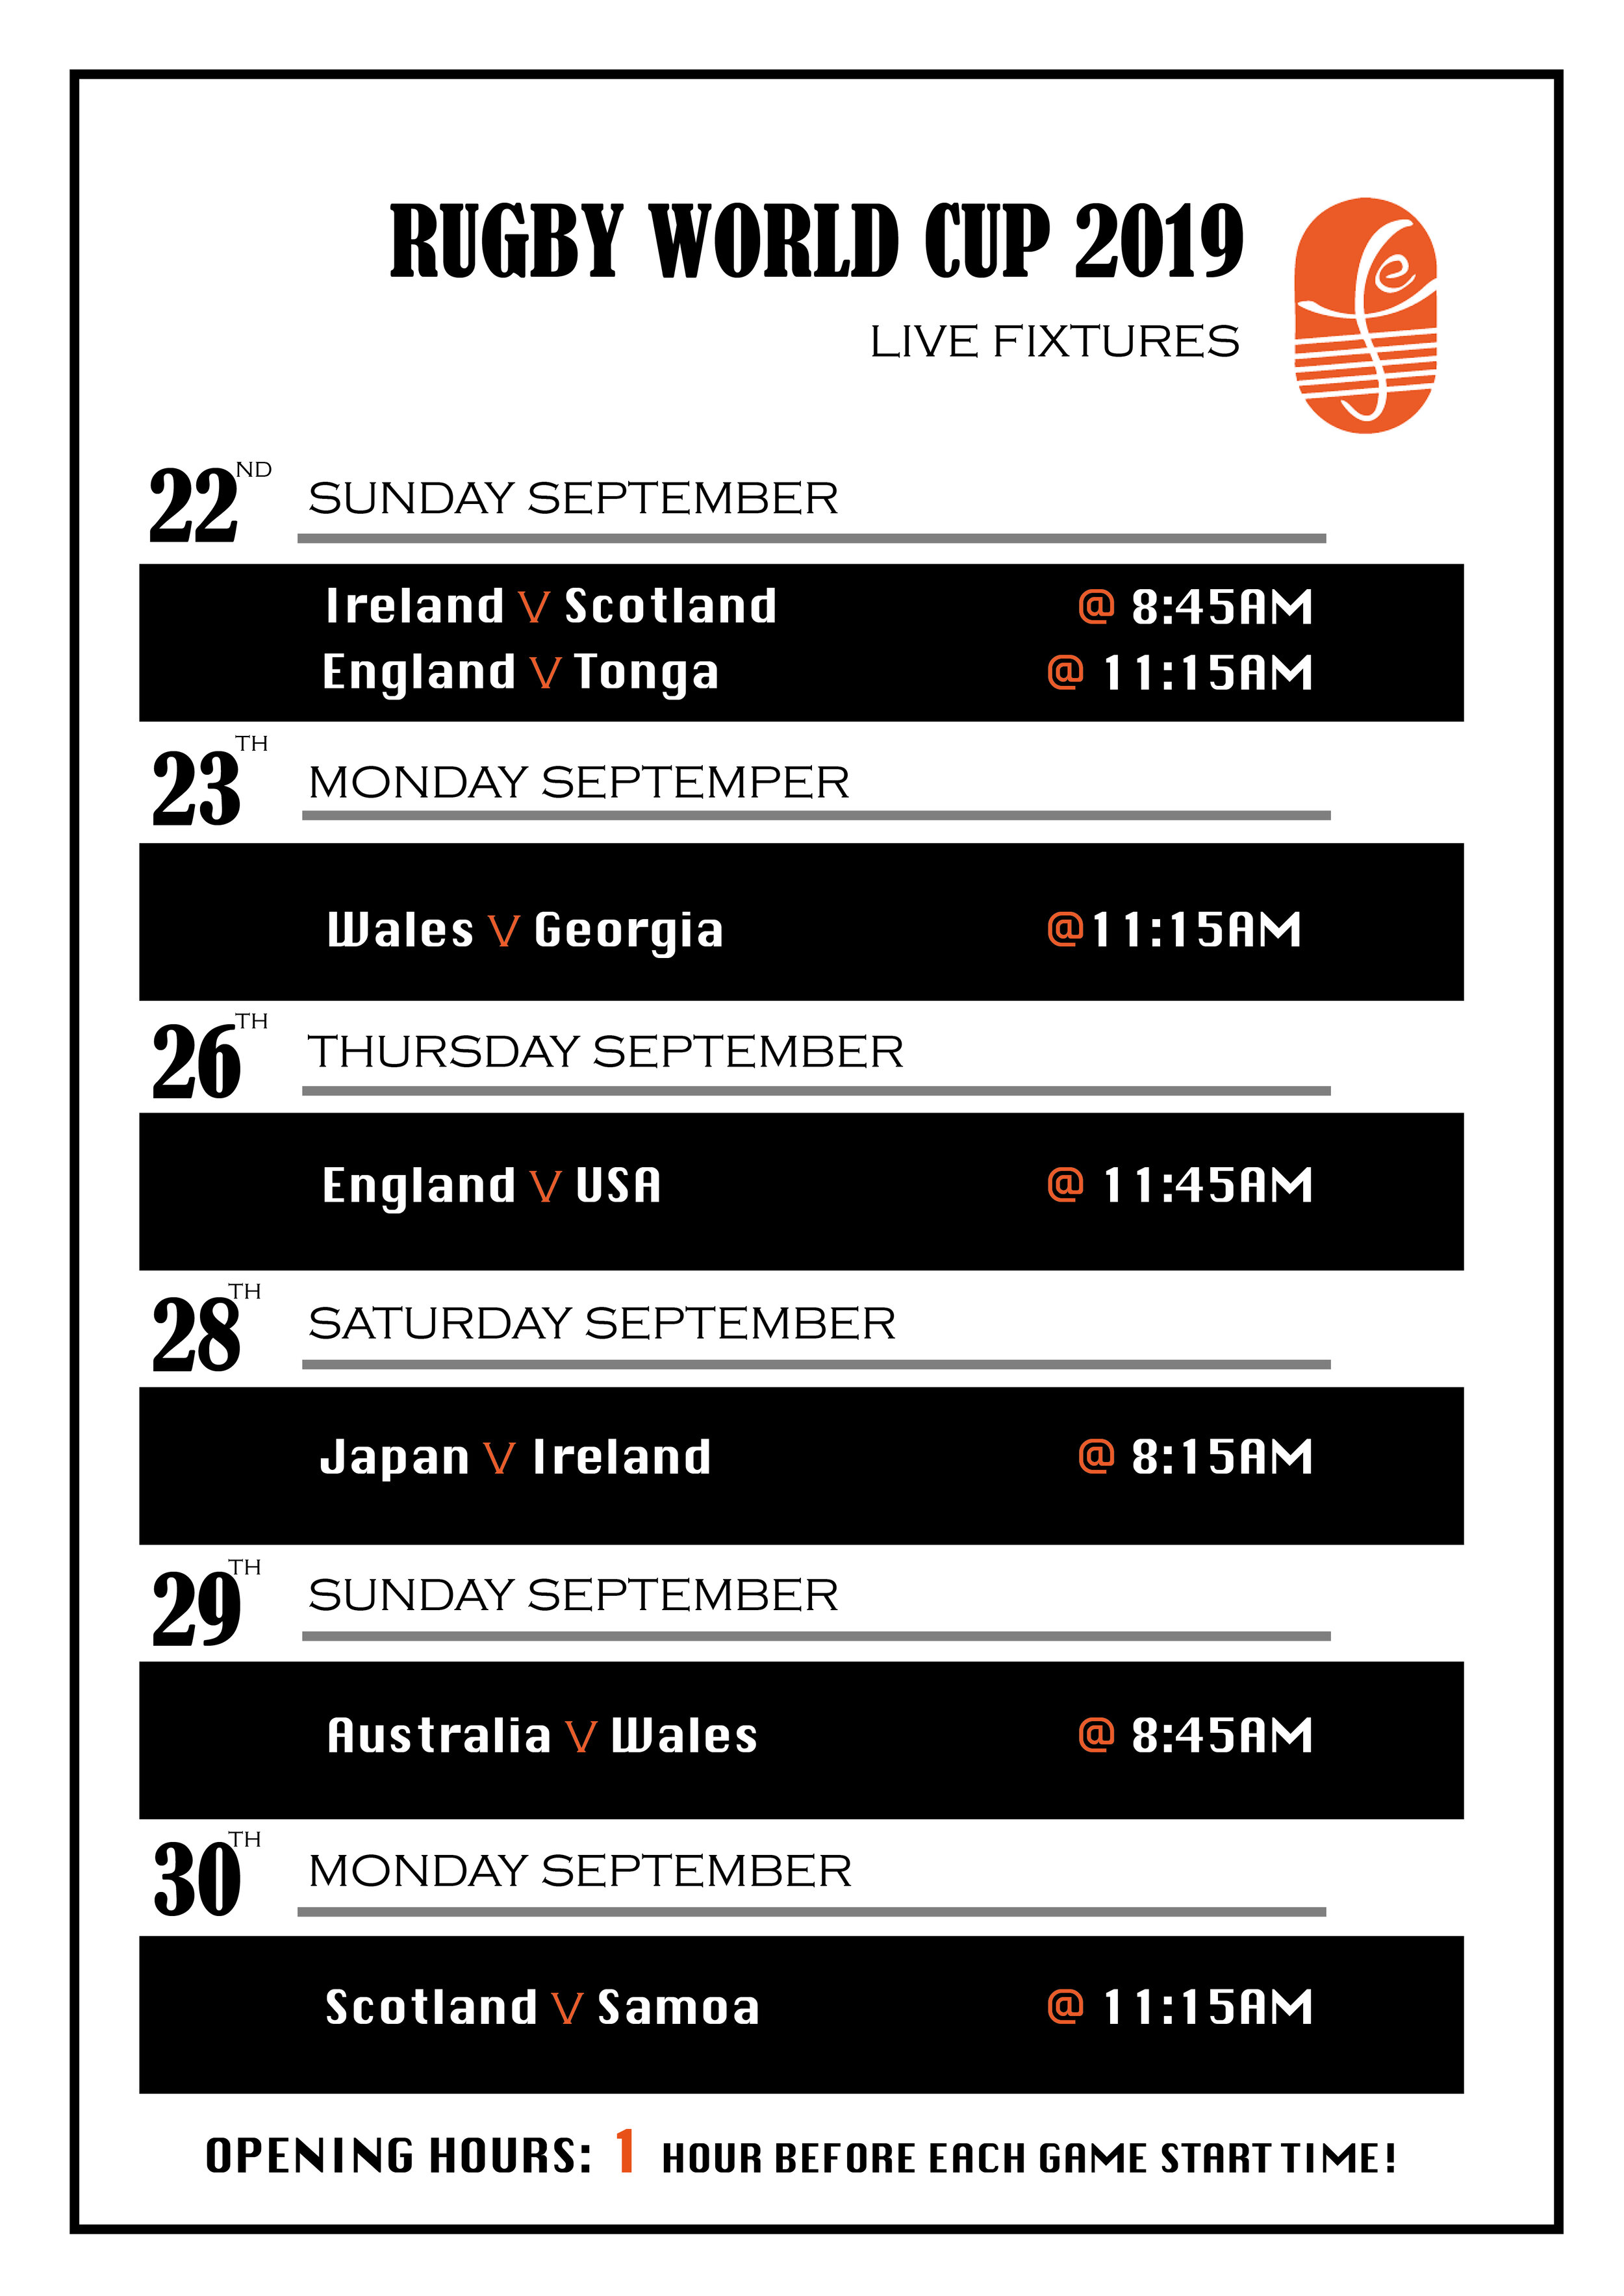 ALL HOME NATIONS & SELECTED OTHERS…  SHOWN LIVE HERE ON THE BIG SCREEN!